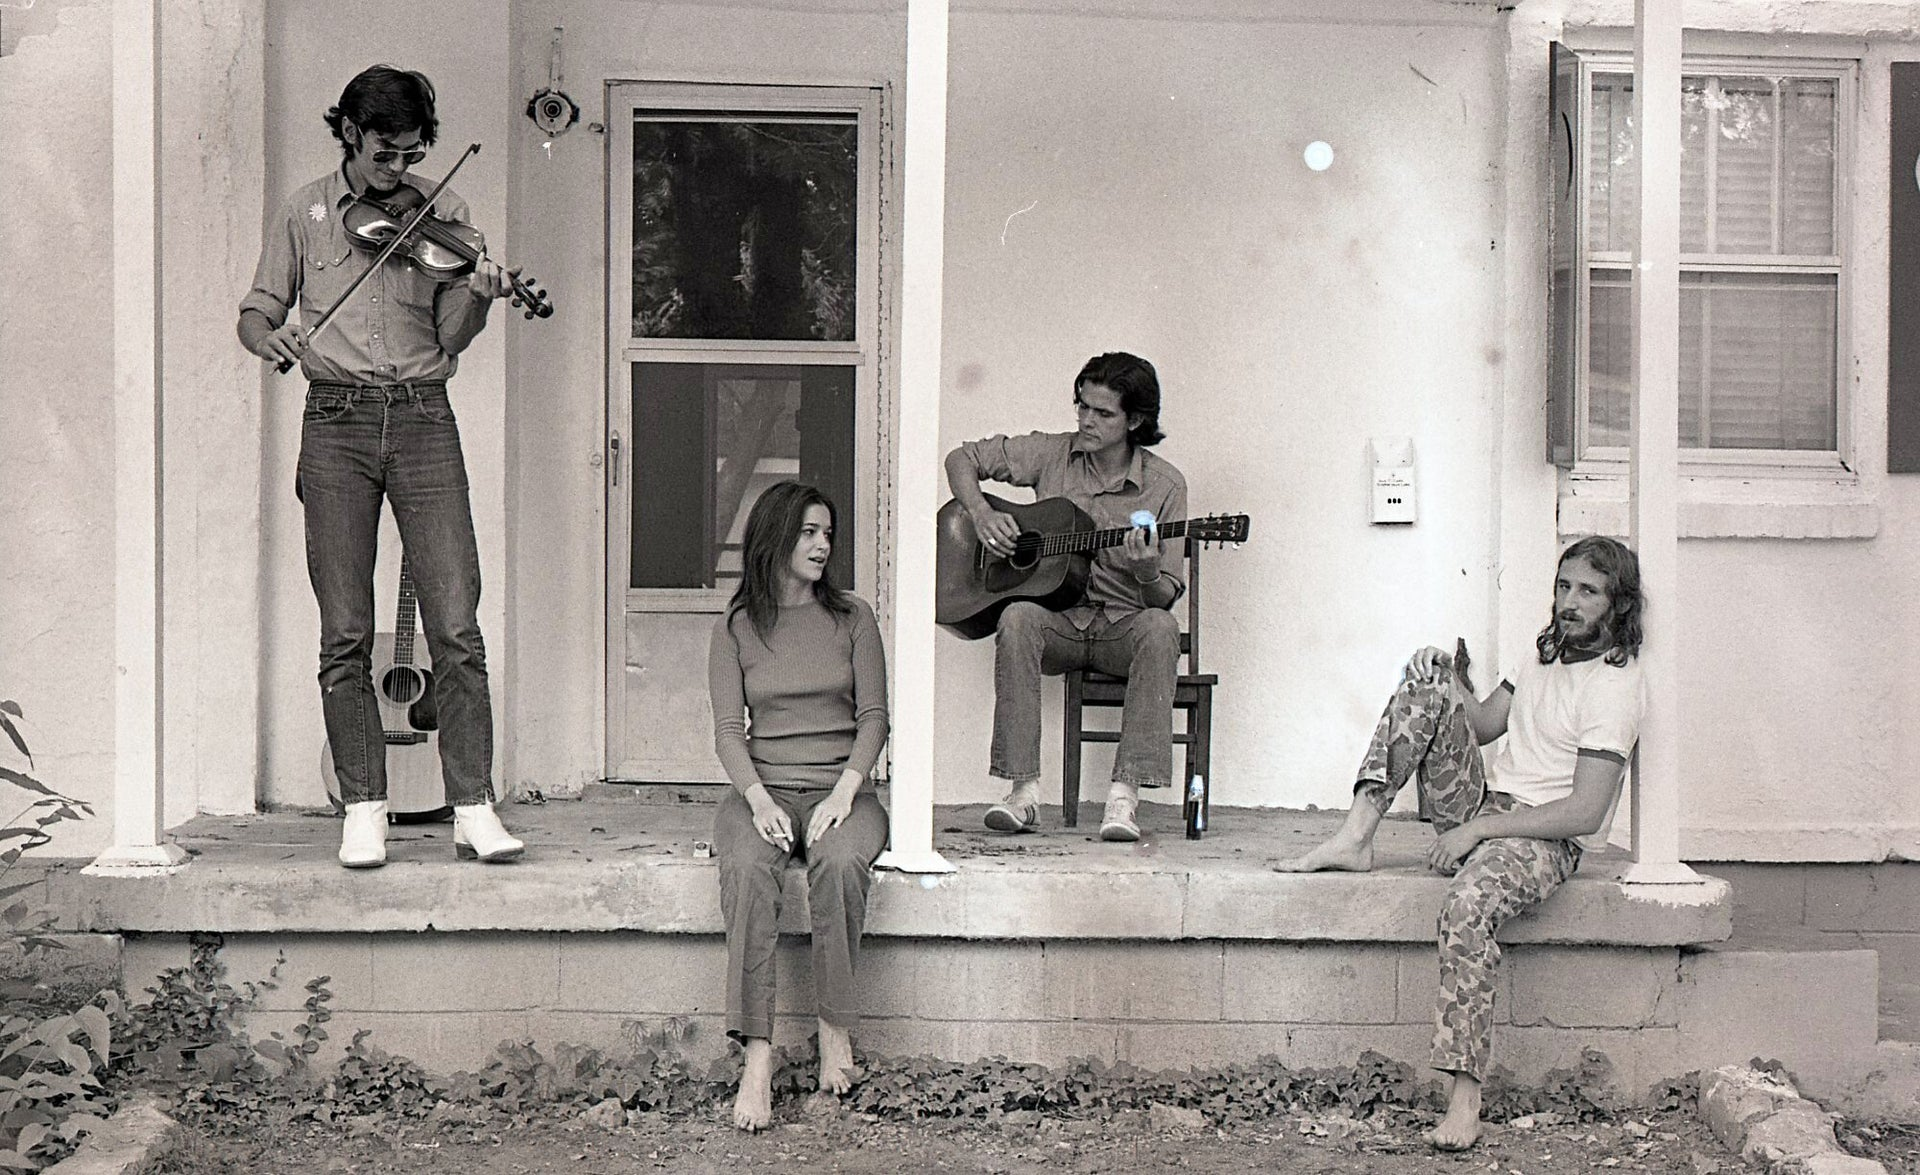 Daniel Antopolsky, right, in a 1972 photo while country musicians do their thing.